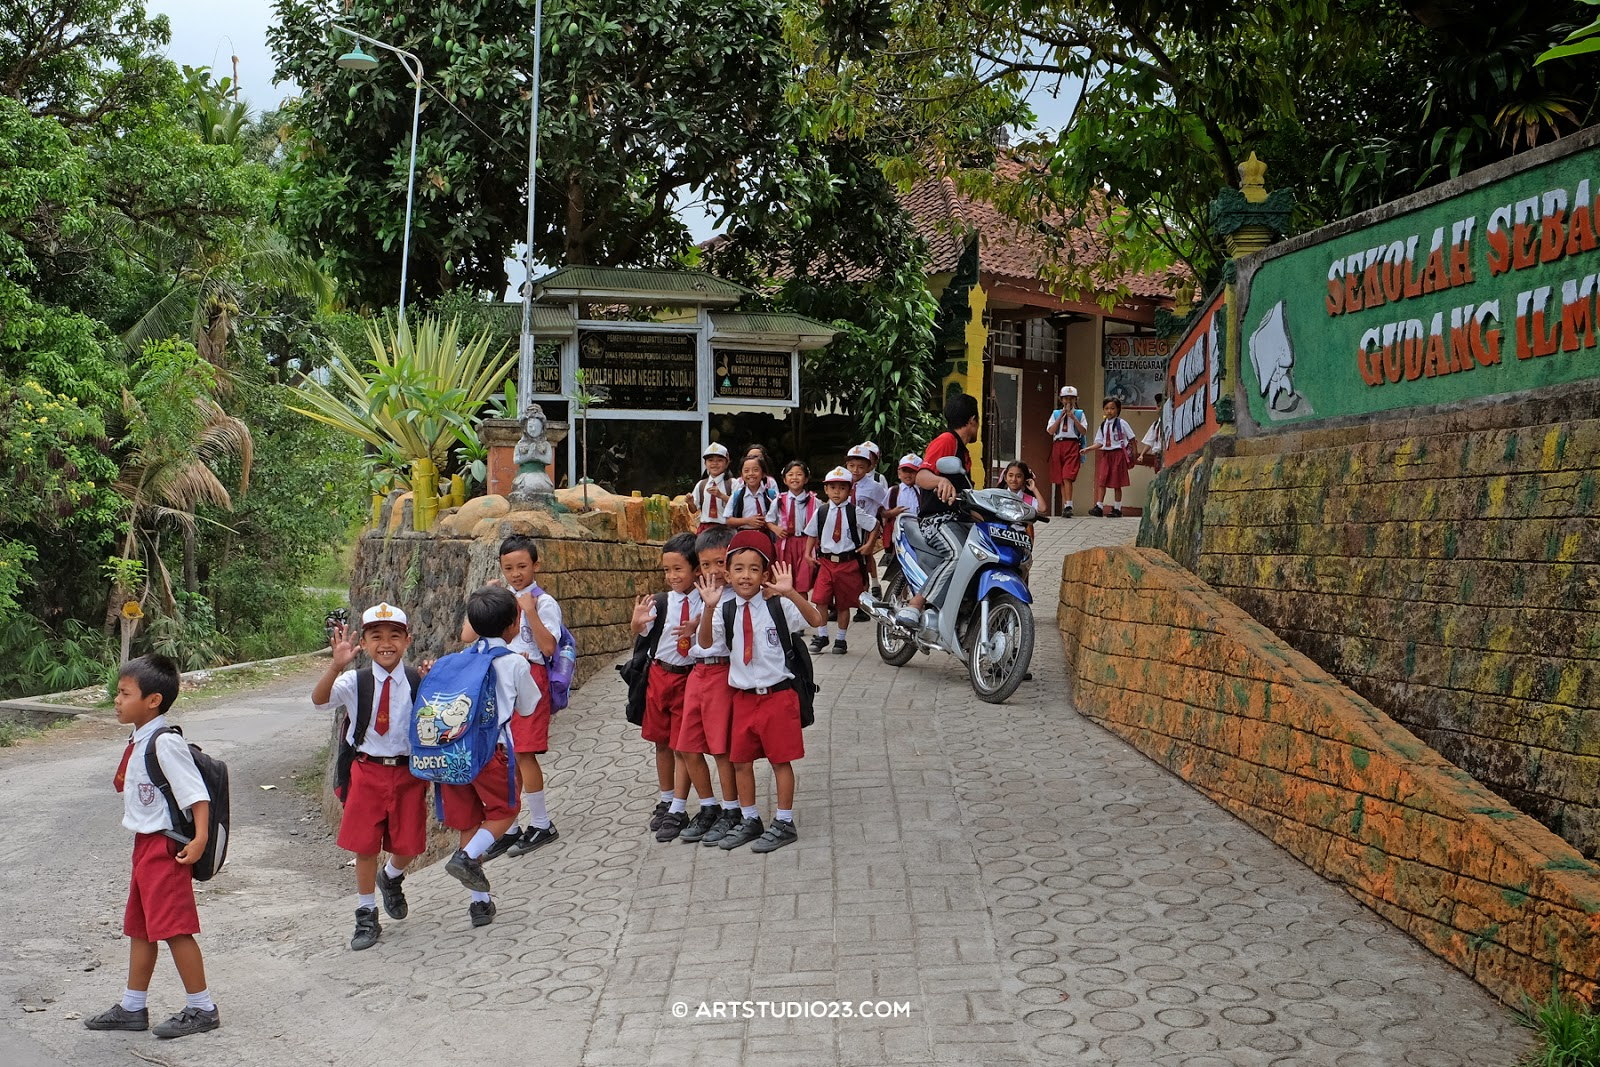 Books wanted, Indonesia schools